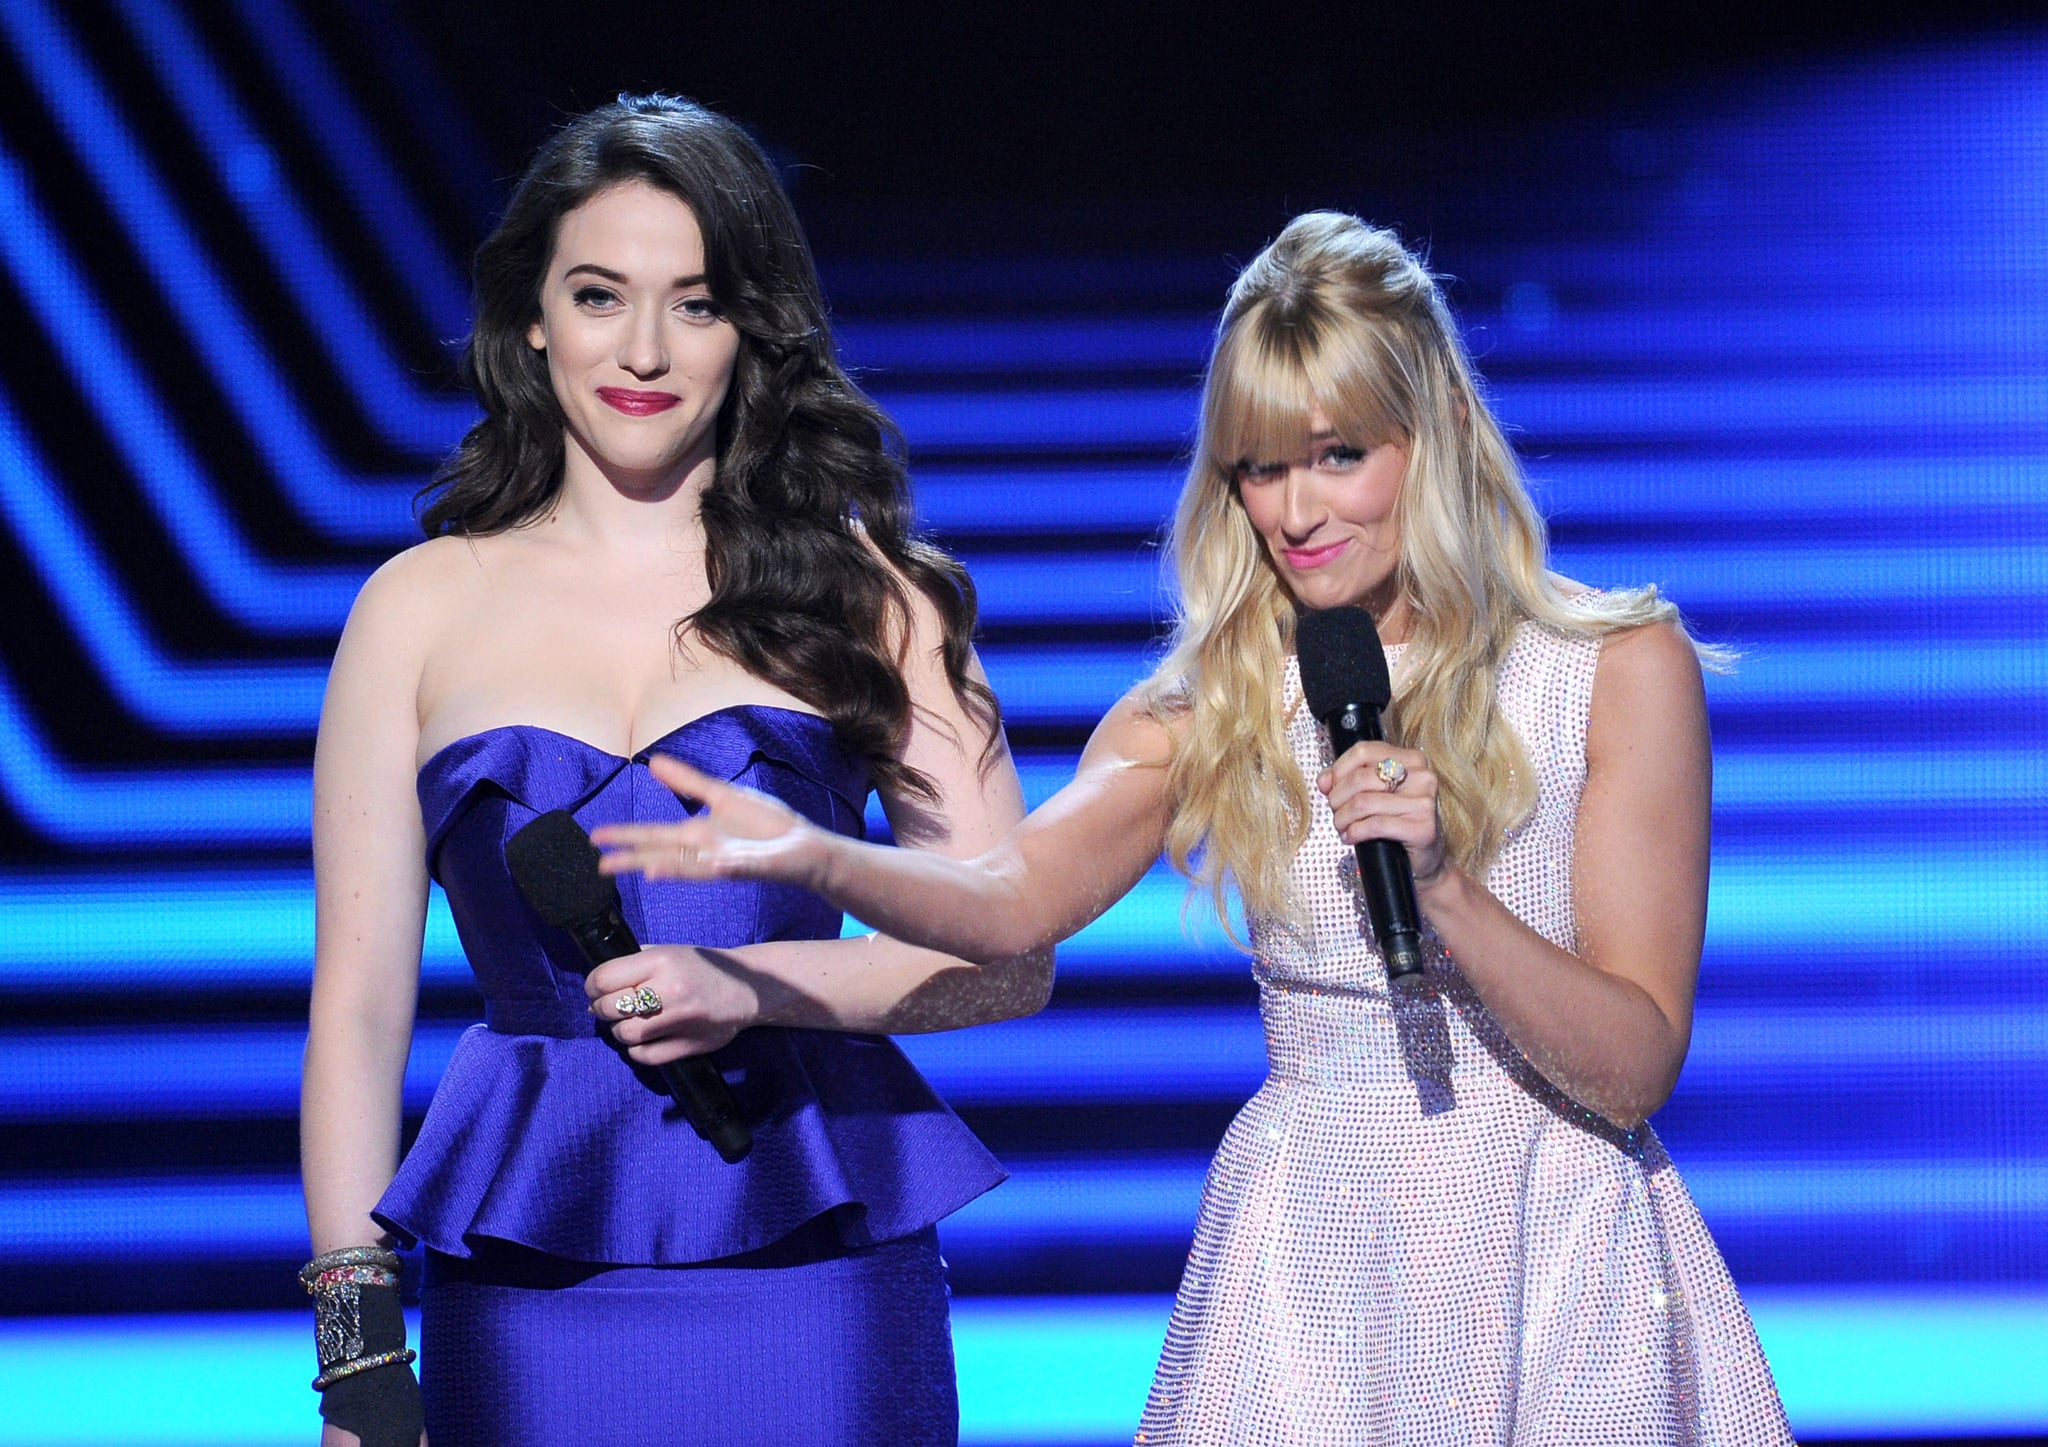 Kat rocked a violet peplum Oliver Tolentino Couture dress while cracking jokes with Beth on stage.